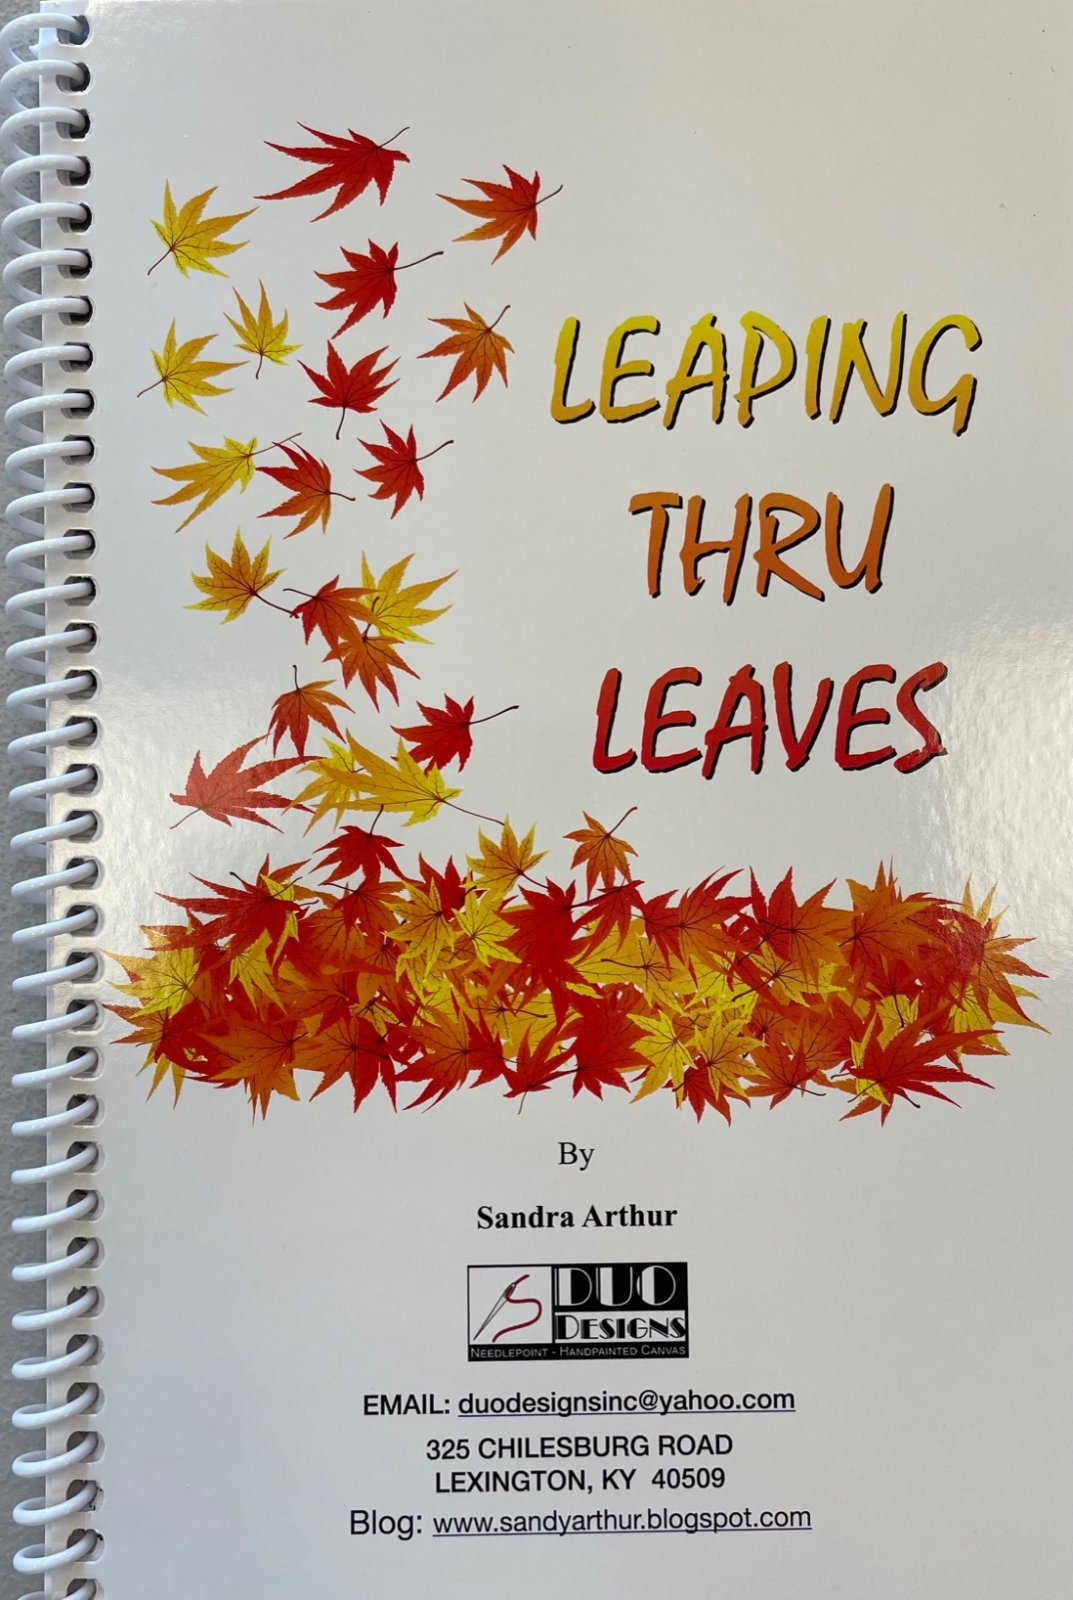 LEAPING THRU LEAVES BOOK